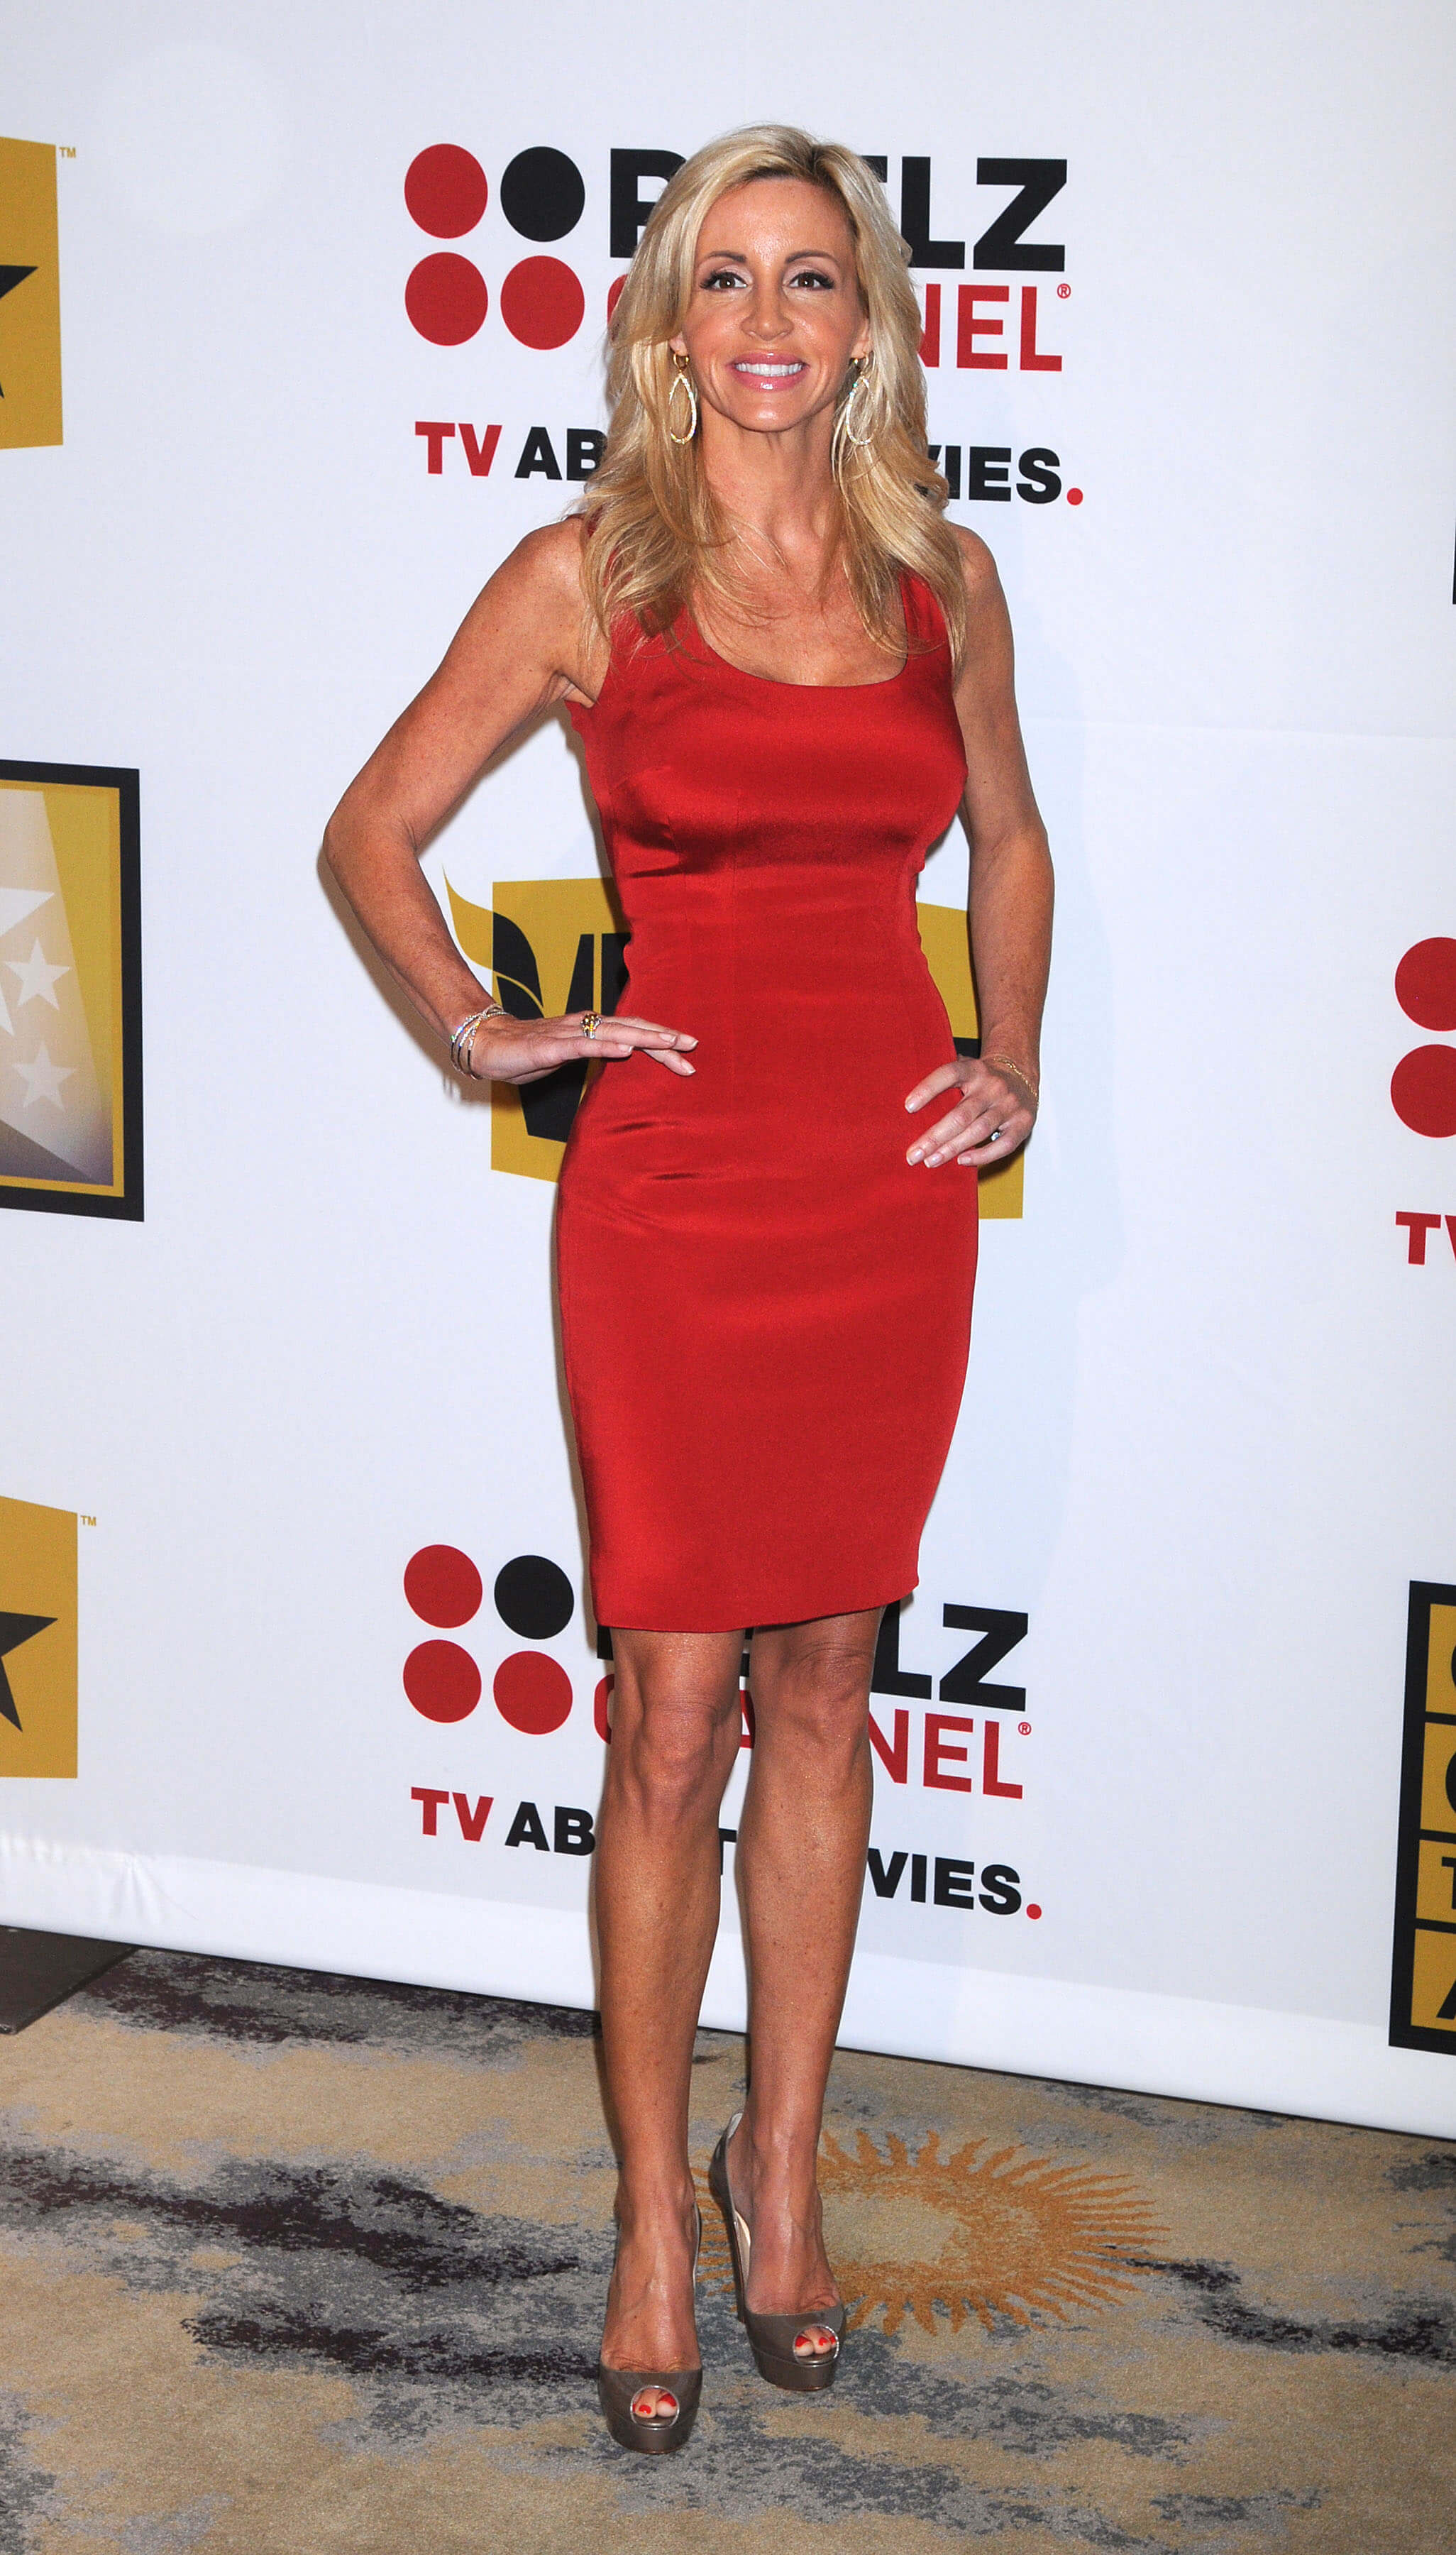 Feet Camille Grammer nudes (69 foto and video), Sexy, Paparazzi, Selfie, legs 2019